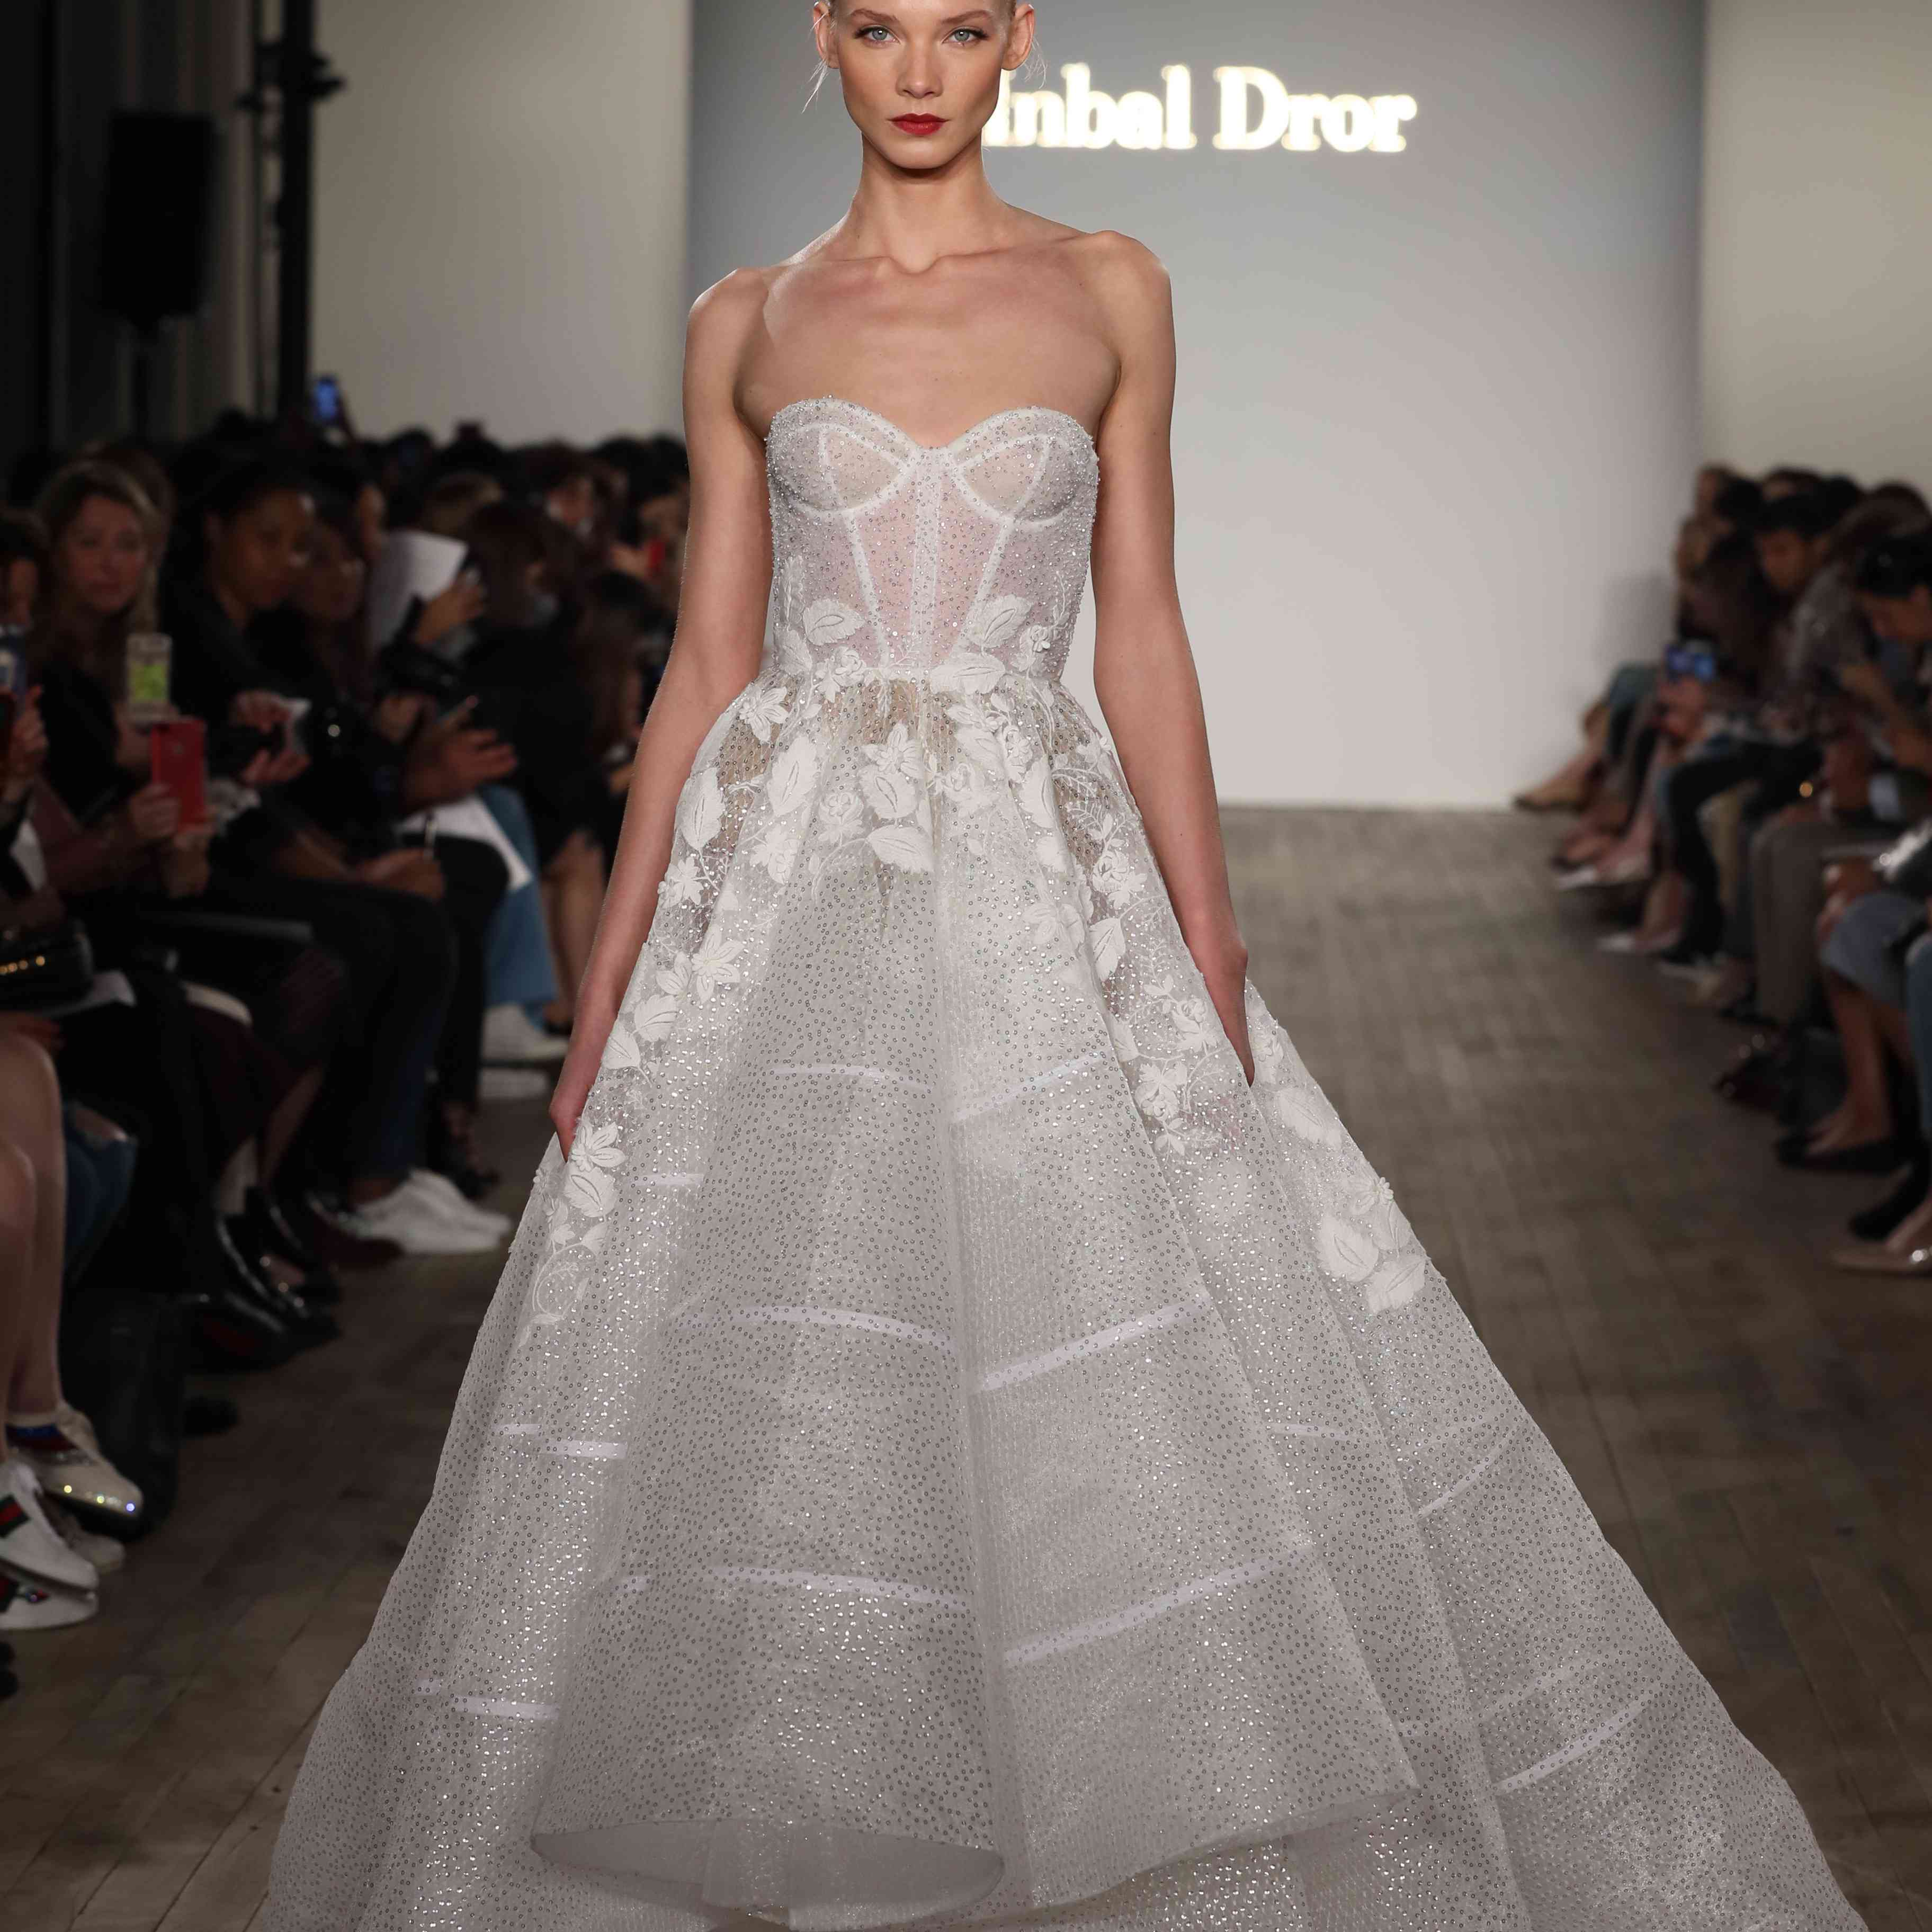 Model in strapless high-low wedding ball gown